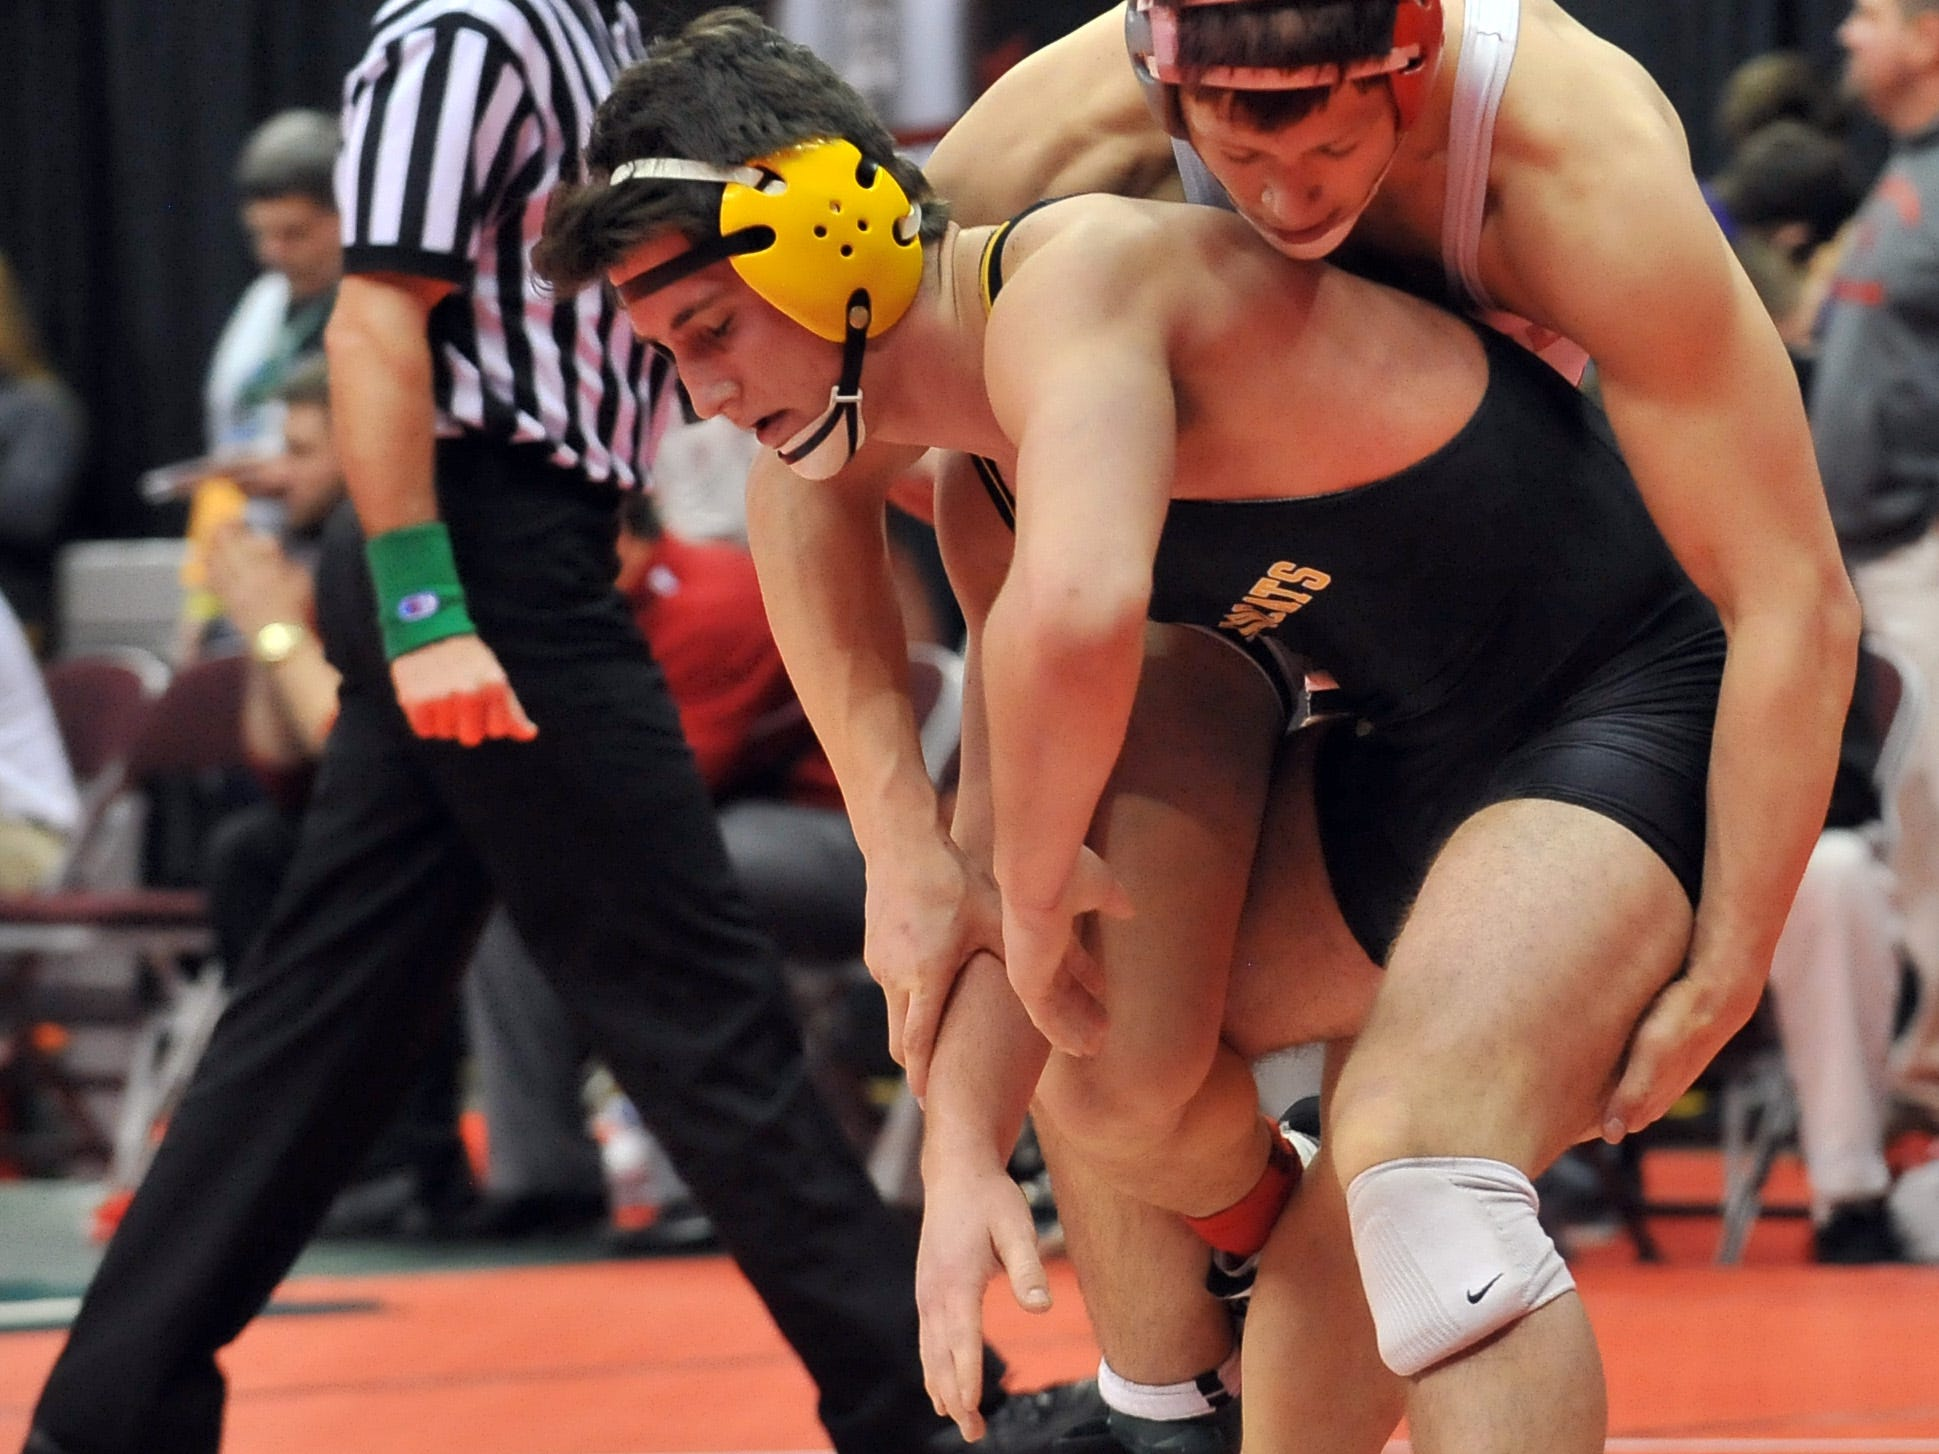 Paint Valley's Caleb Johnson wrestles during the Division III state wrestling tournament, Thursday, March 12, 2015, at the Jerome Schottenstein Center in Columbus.